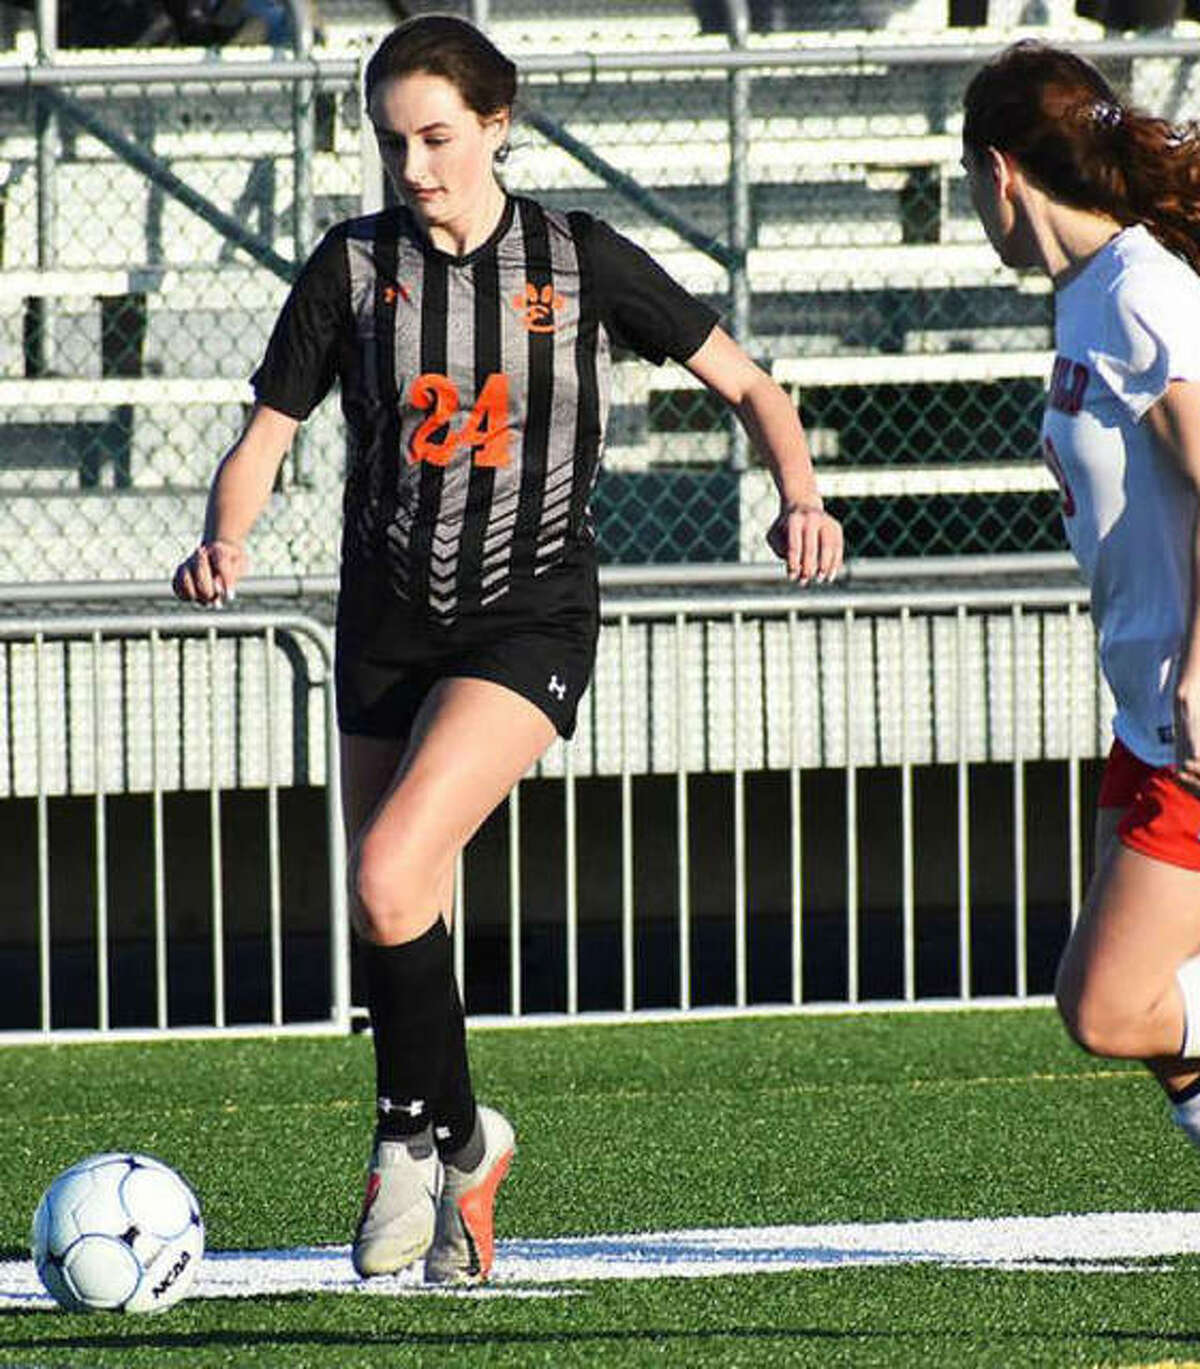 Edwardsville midfielder Rileigh Kuhns dribbles the ball down the field against a defender last season at home.